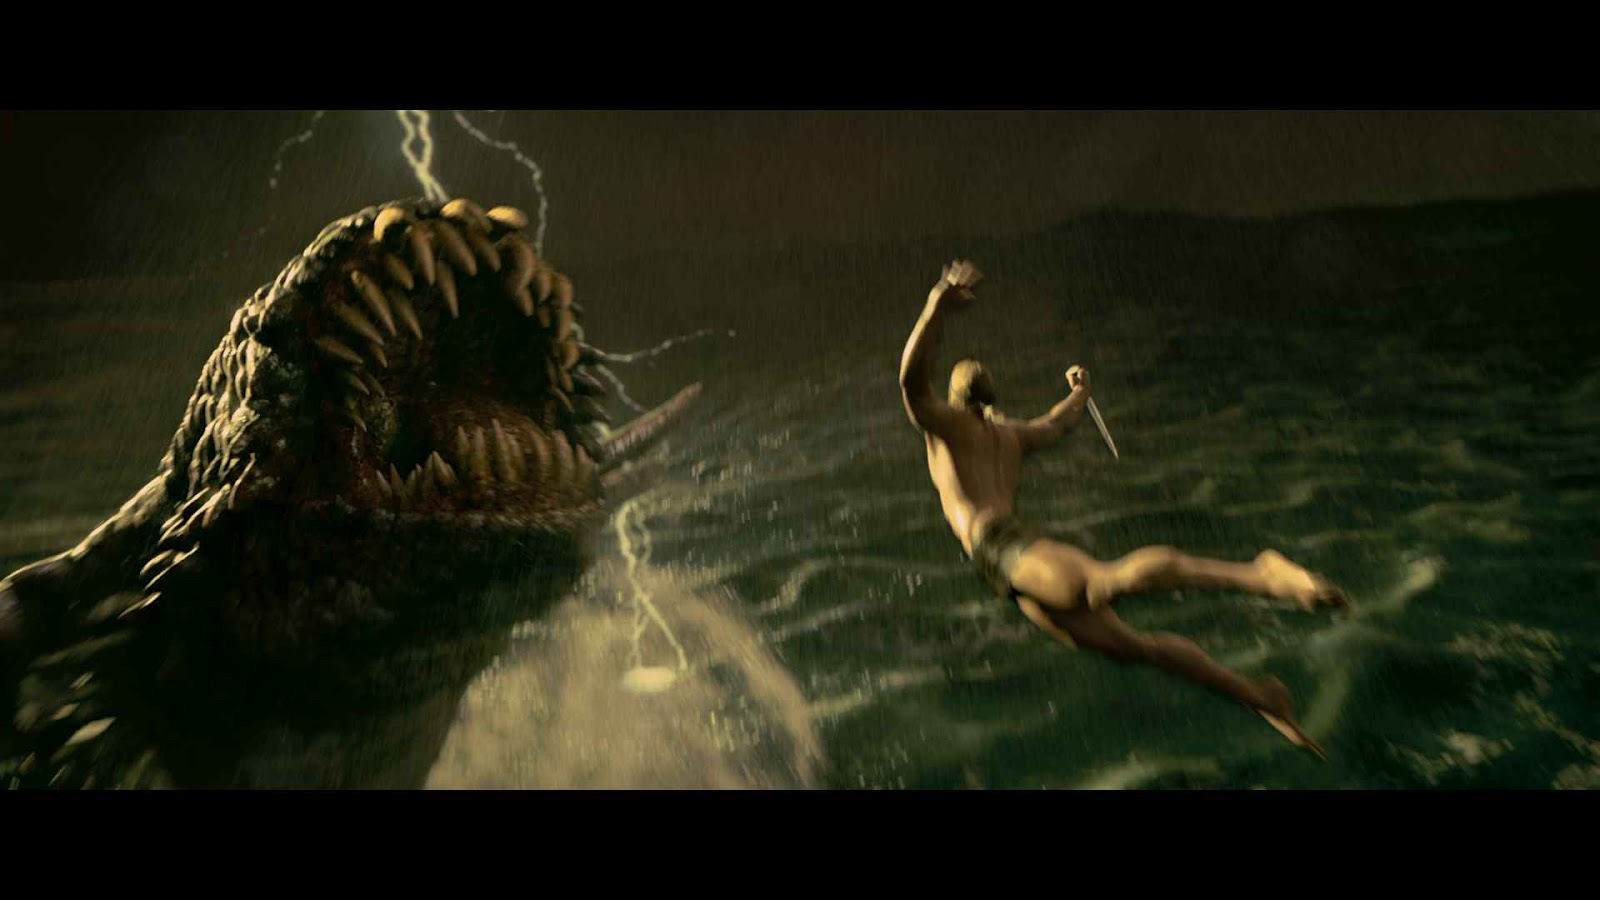 grendel the monster in beowulf Across the sea in geatland, beowulf hears of hrothgar's plight with the monster grendel he decides to go and kill it, and earn a reward from the rich hrothgar, and a place in songs and history.